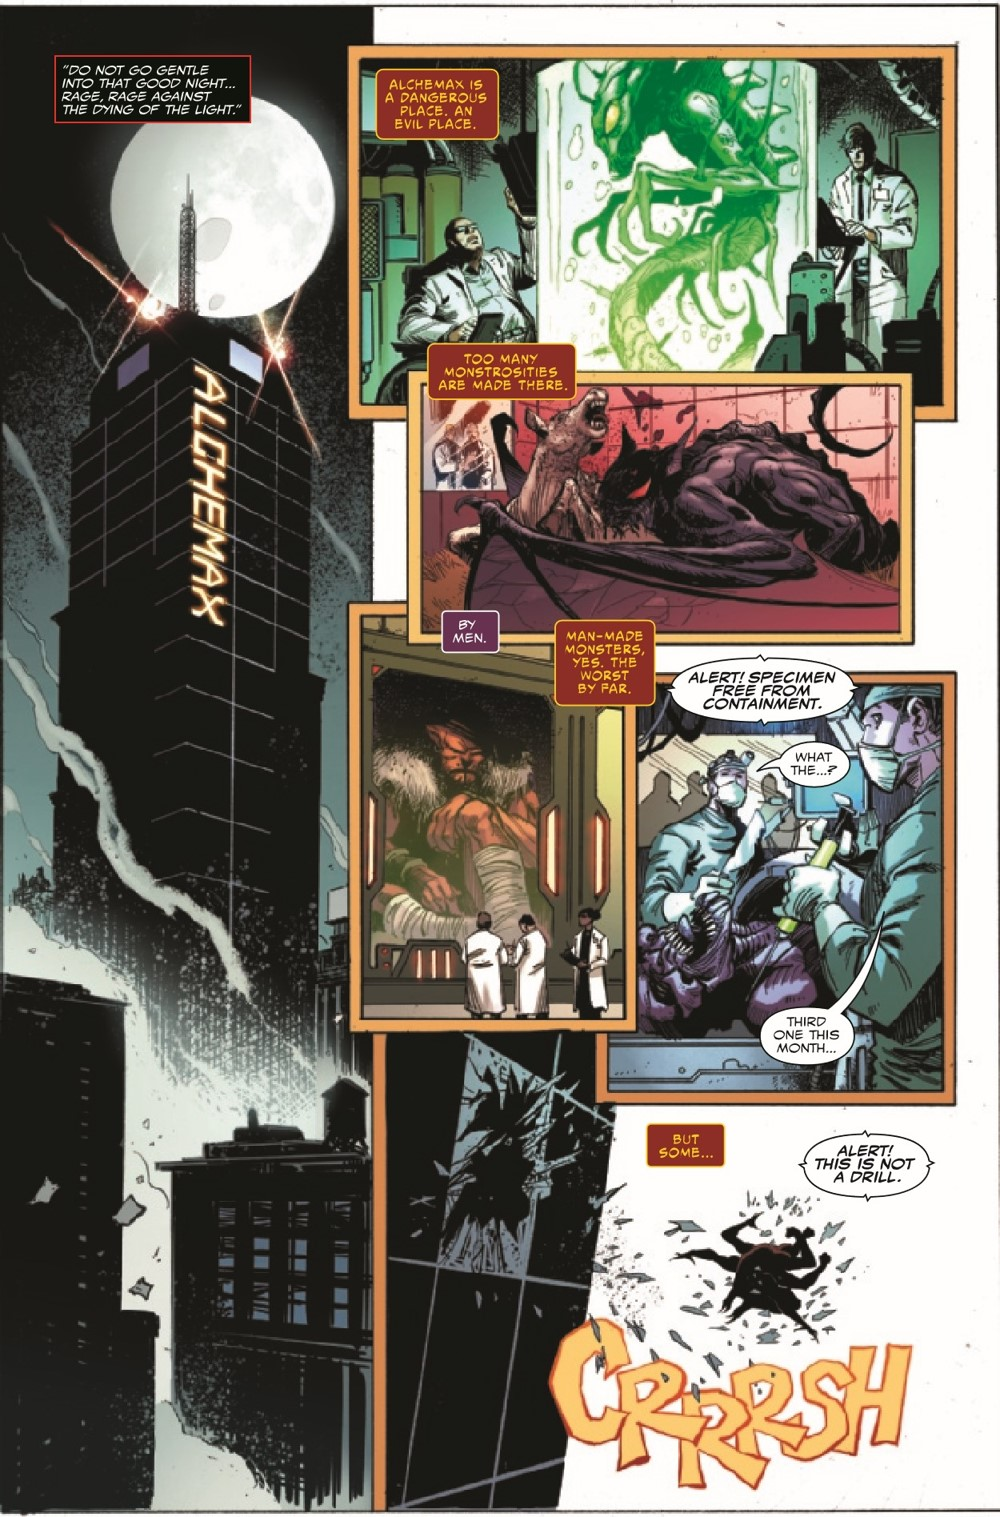 EXTCARNSC2021001_Preview-3 ComicList Previews: EXTREME CARNAGE SCREAM #1